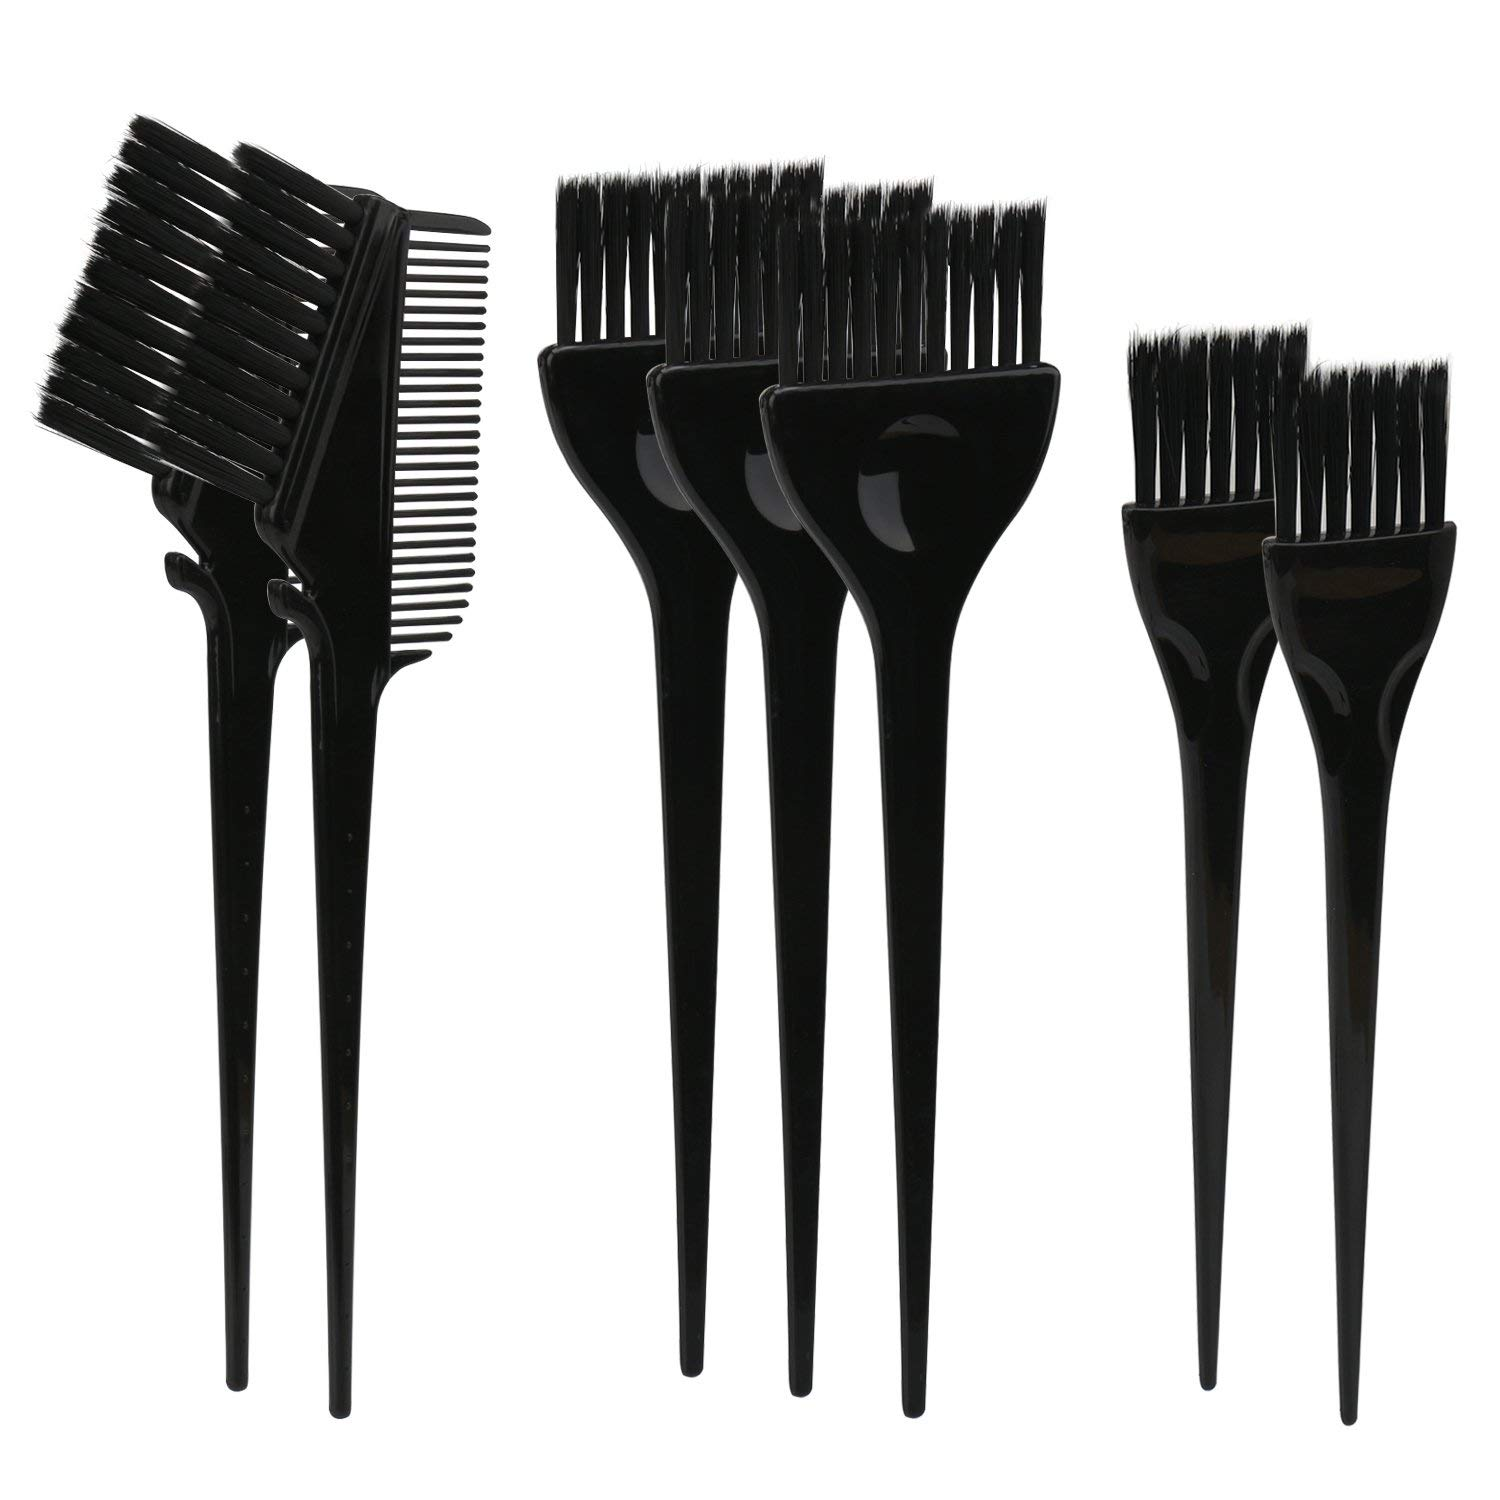 Hair Coloring Brushes Combs